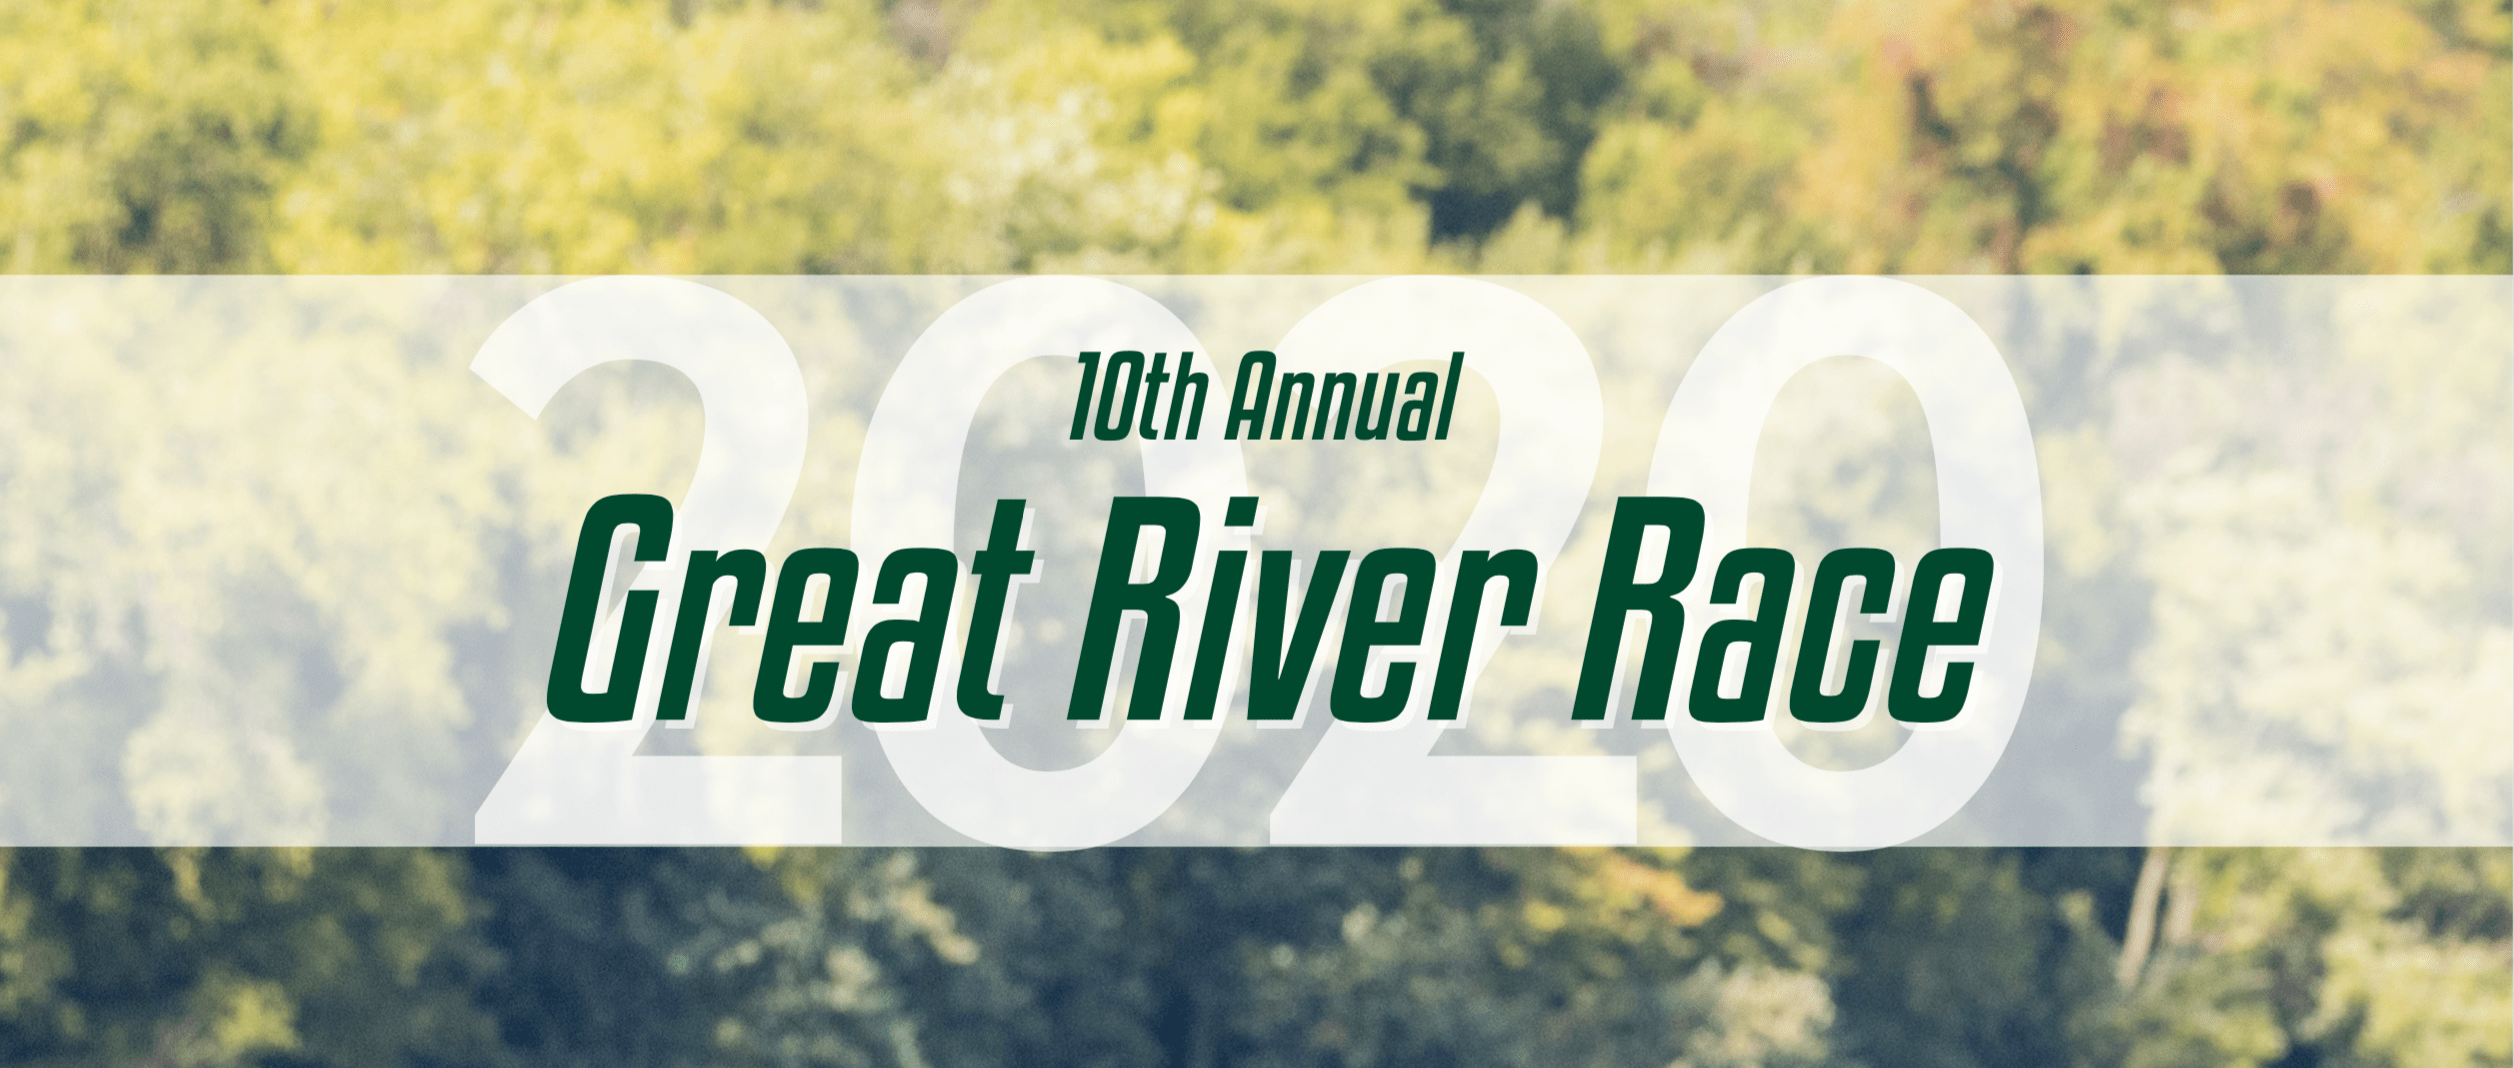 10th Annual Great River Race